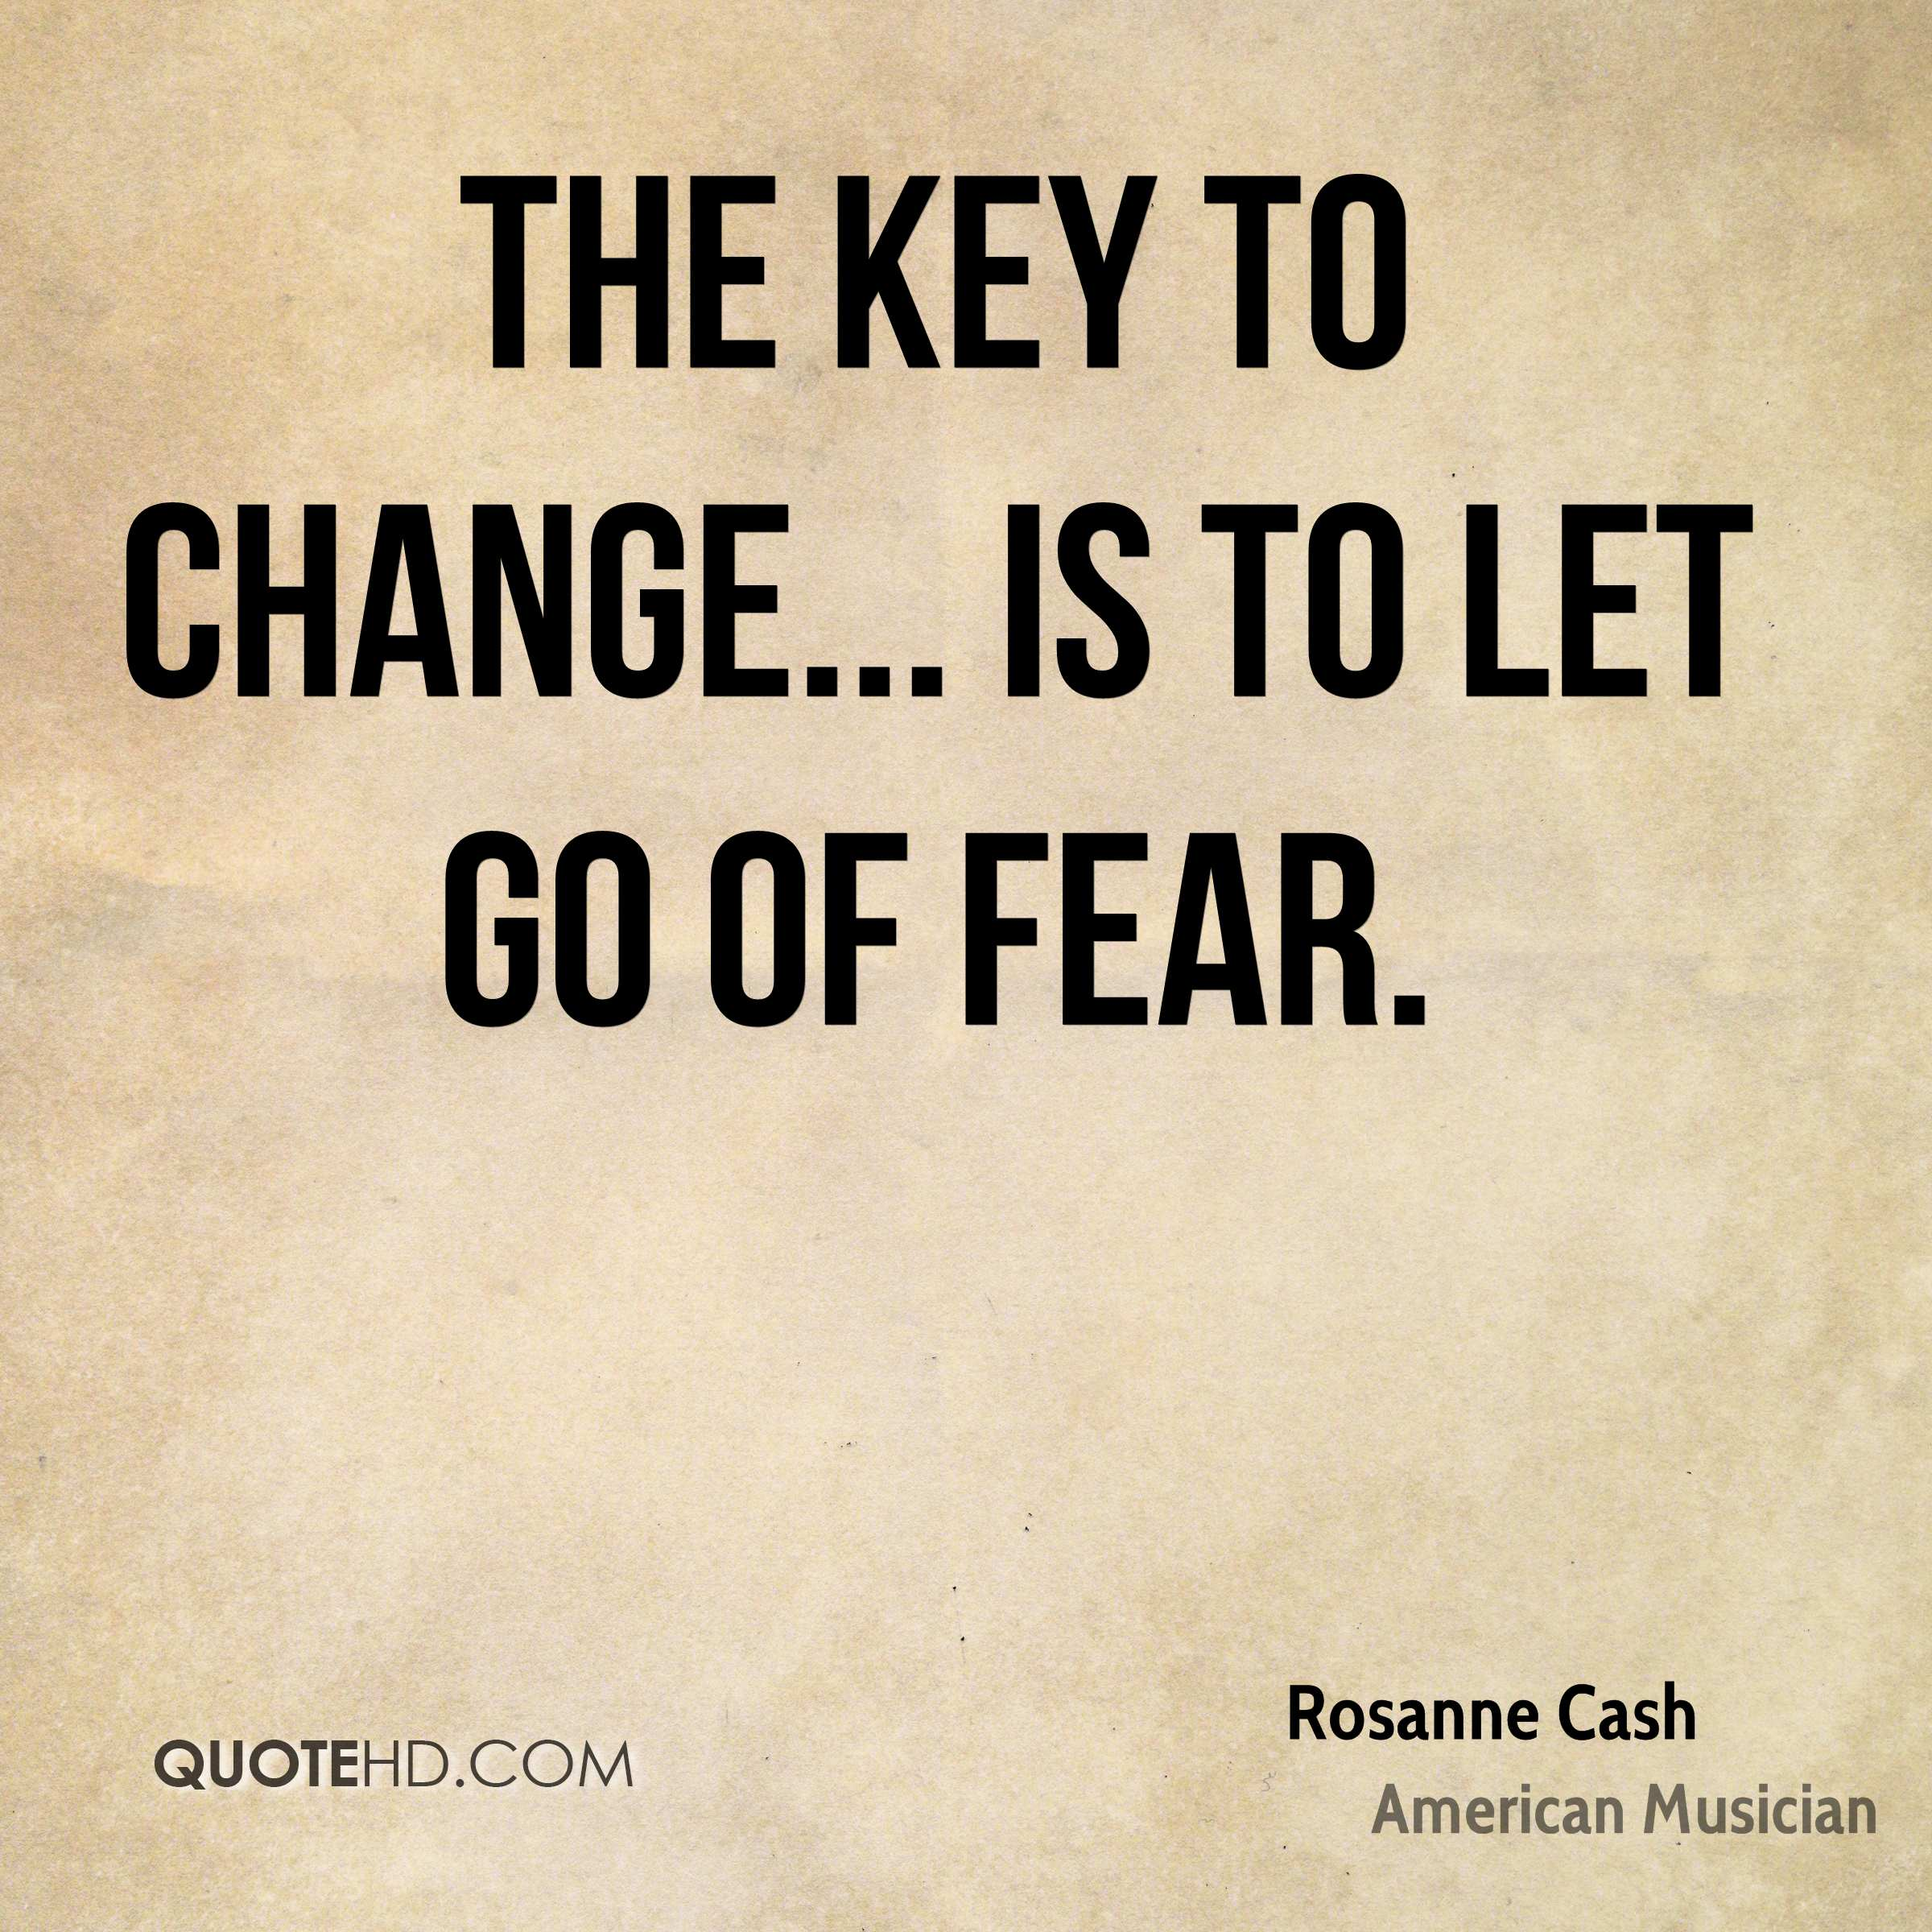 The key to change... is to let go of fear.